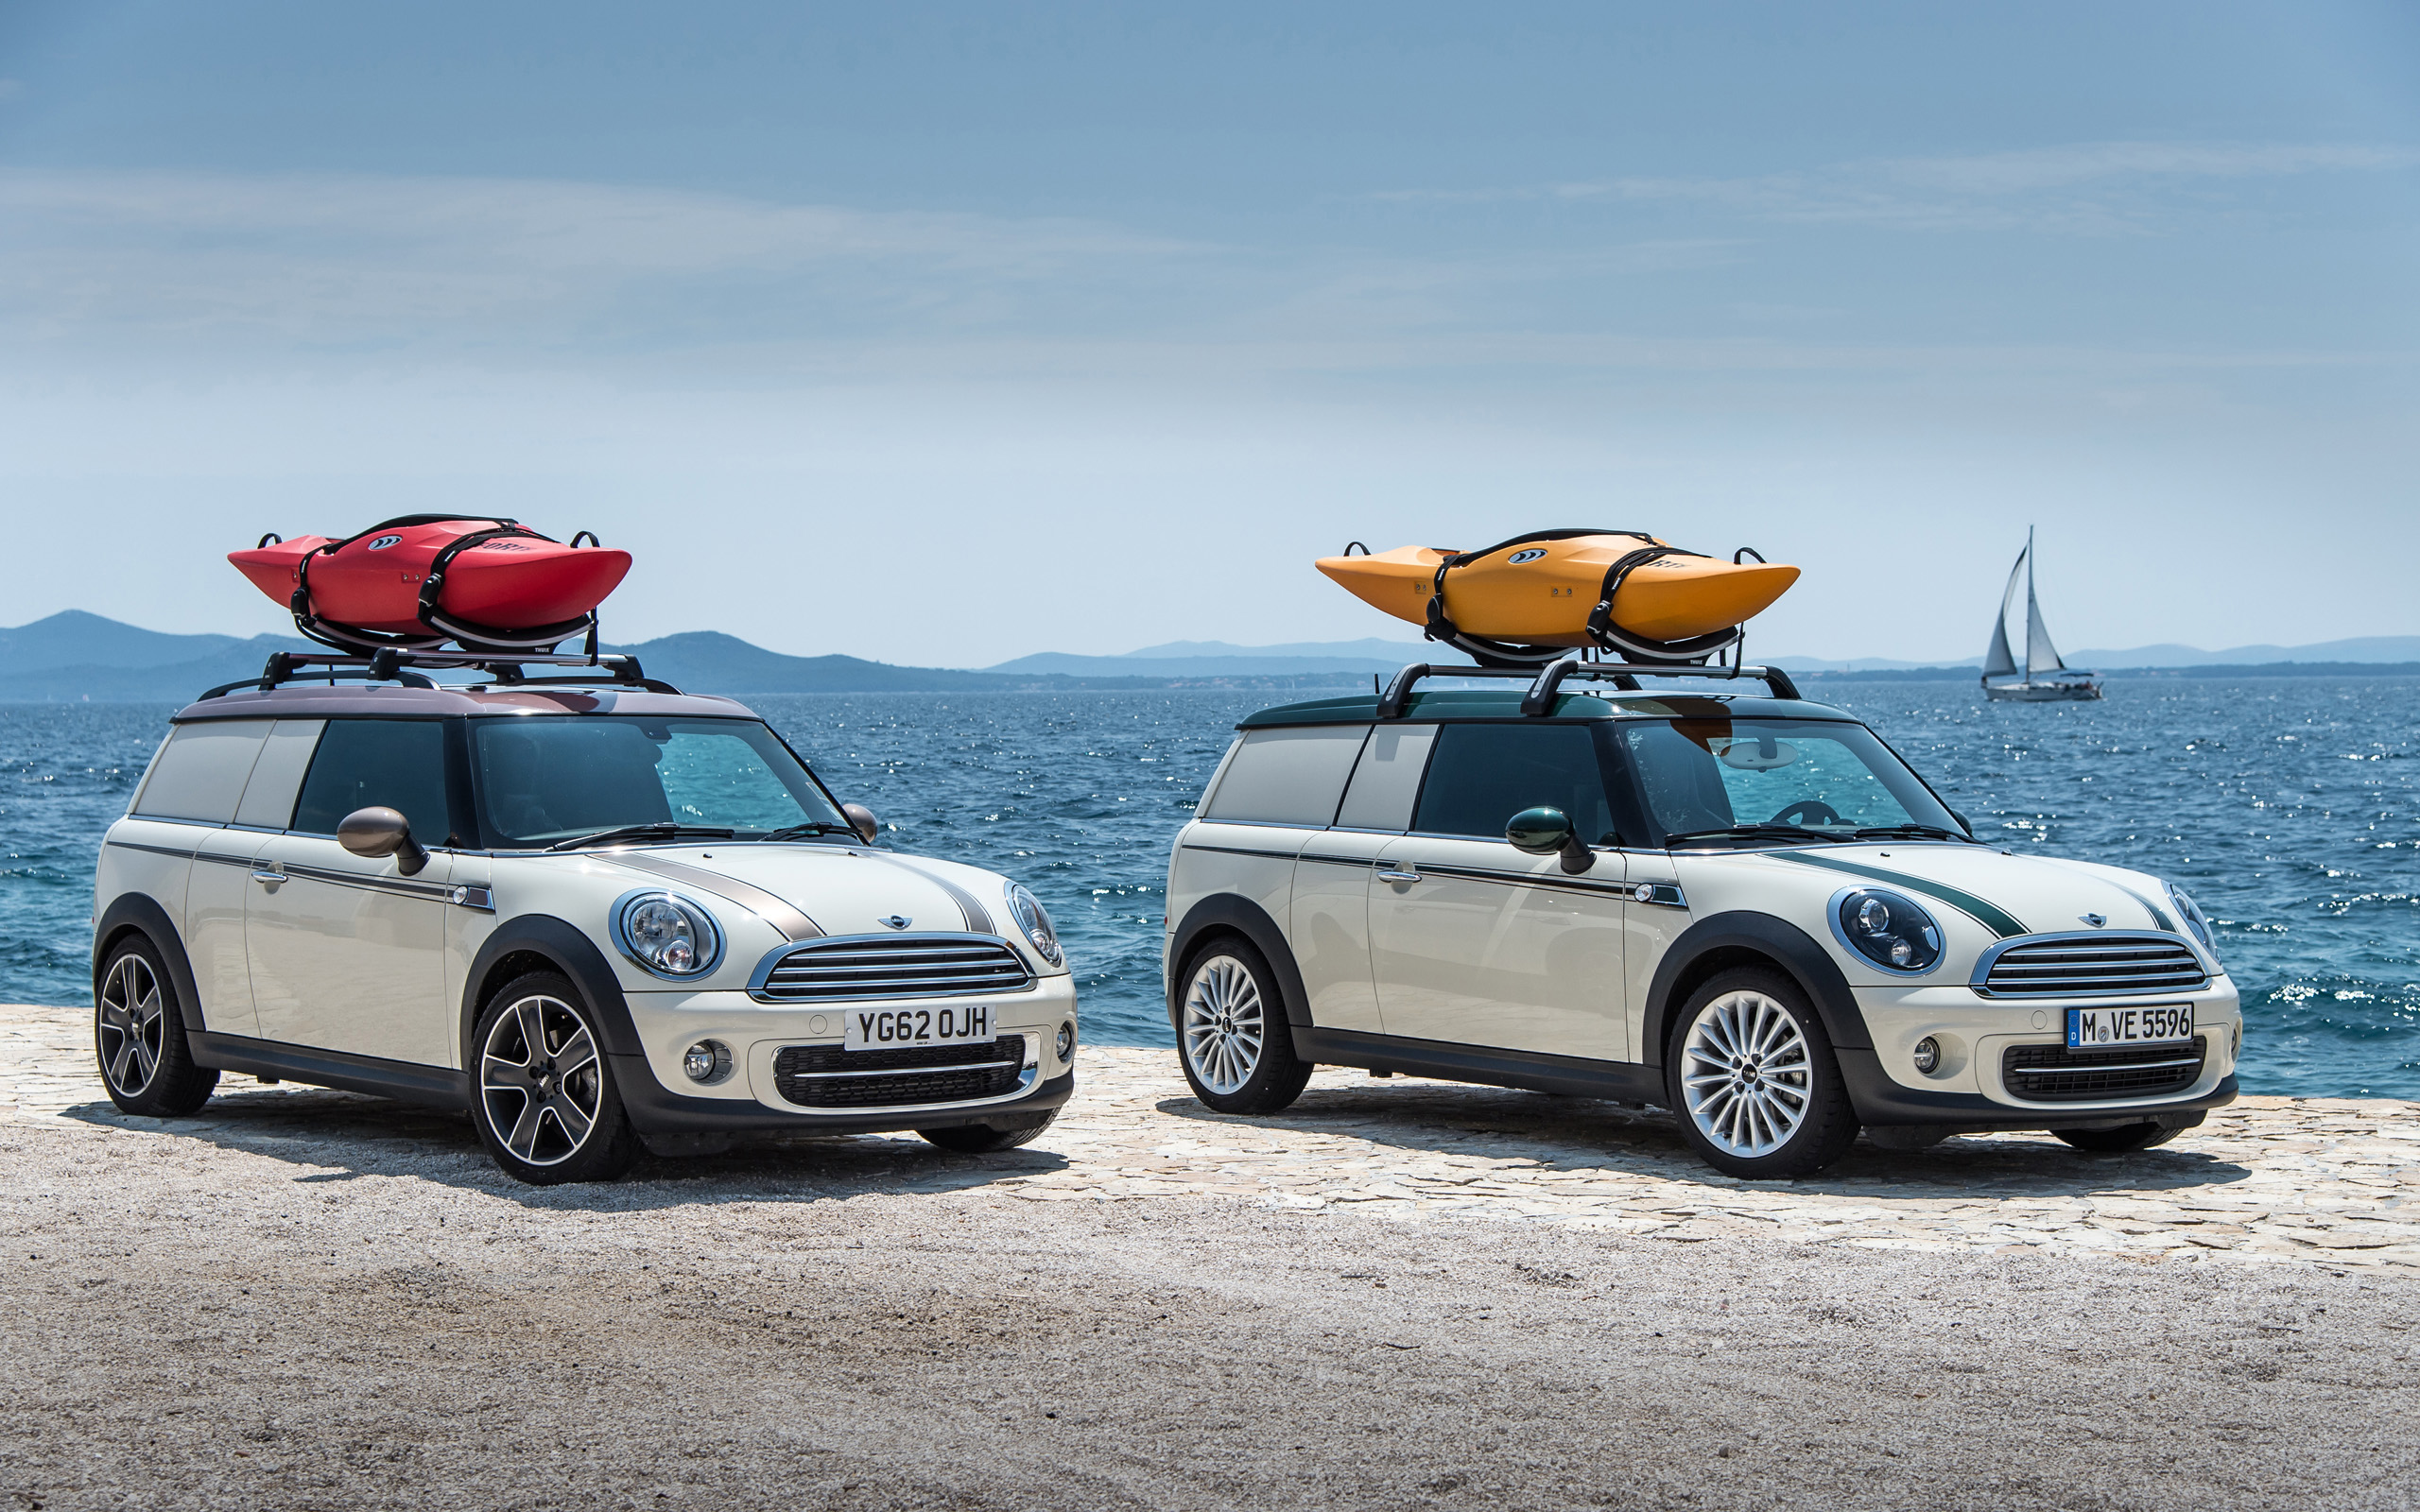 2013 Mini Clubvan Duo Camper Concept Wallpaper HD Car Wallpapers 2560x1600